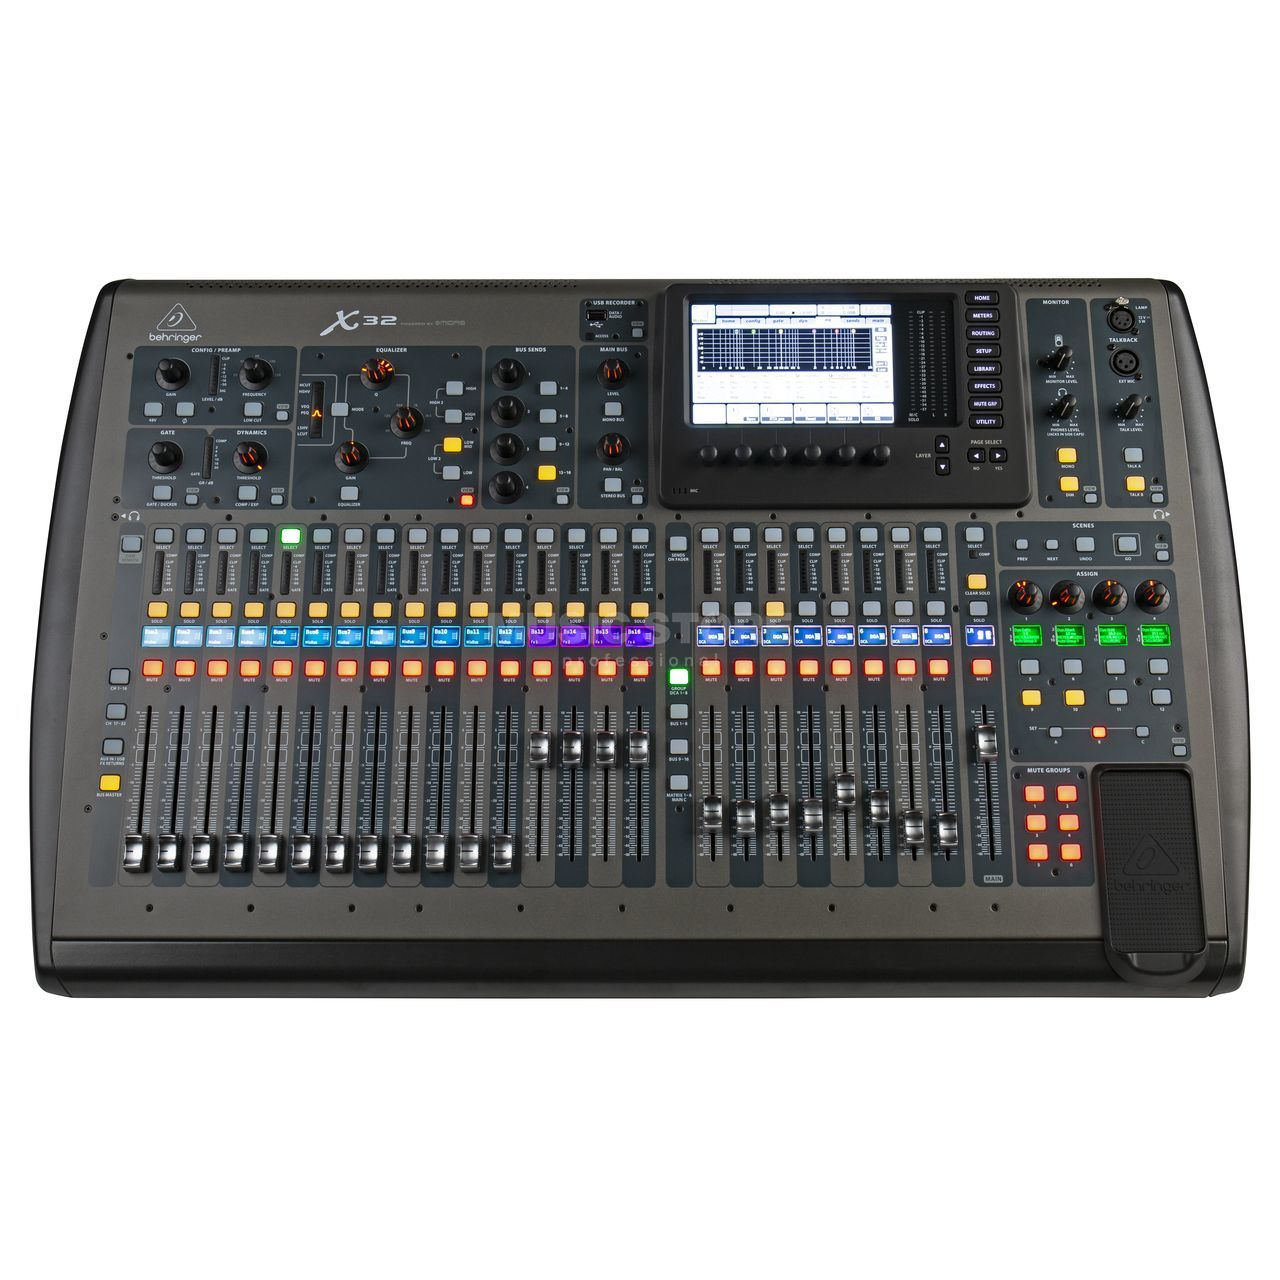 behringer x32 digital mixer dv247 en gb. Black Bedroom Furniture Sets. Home Design Ideas